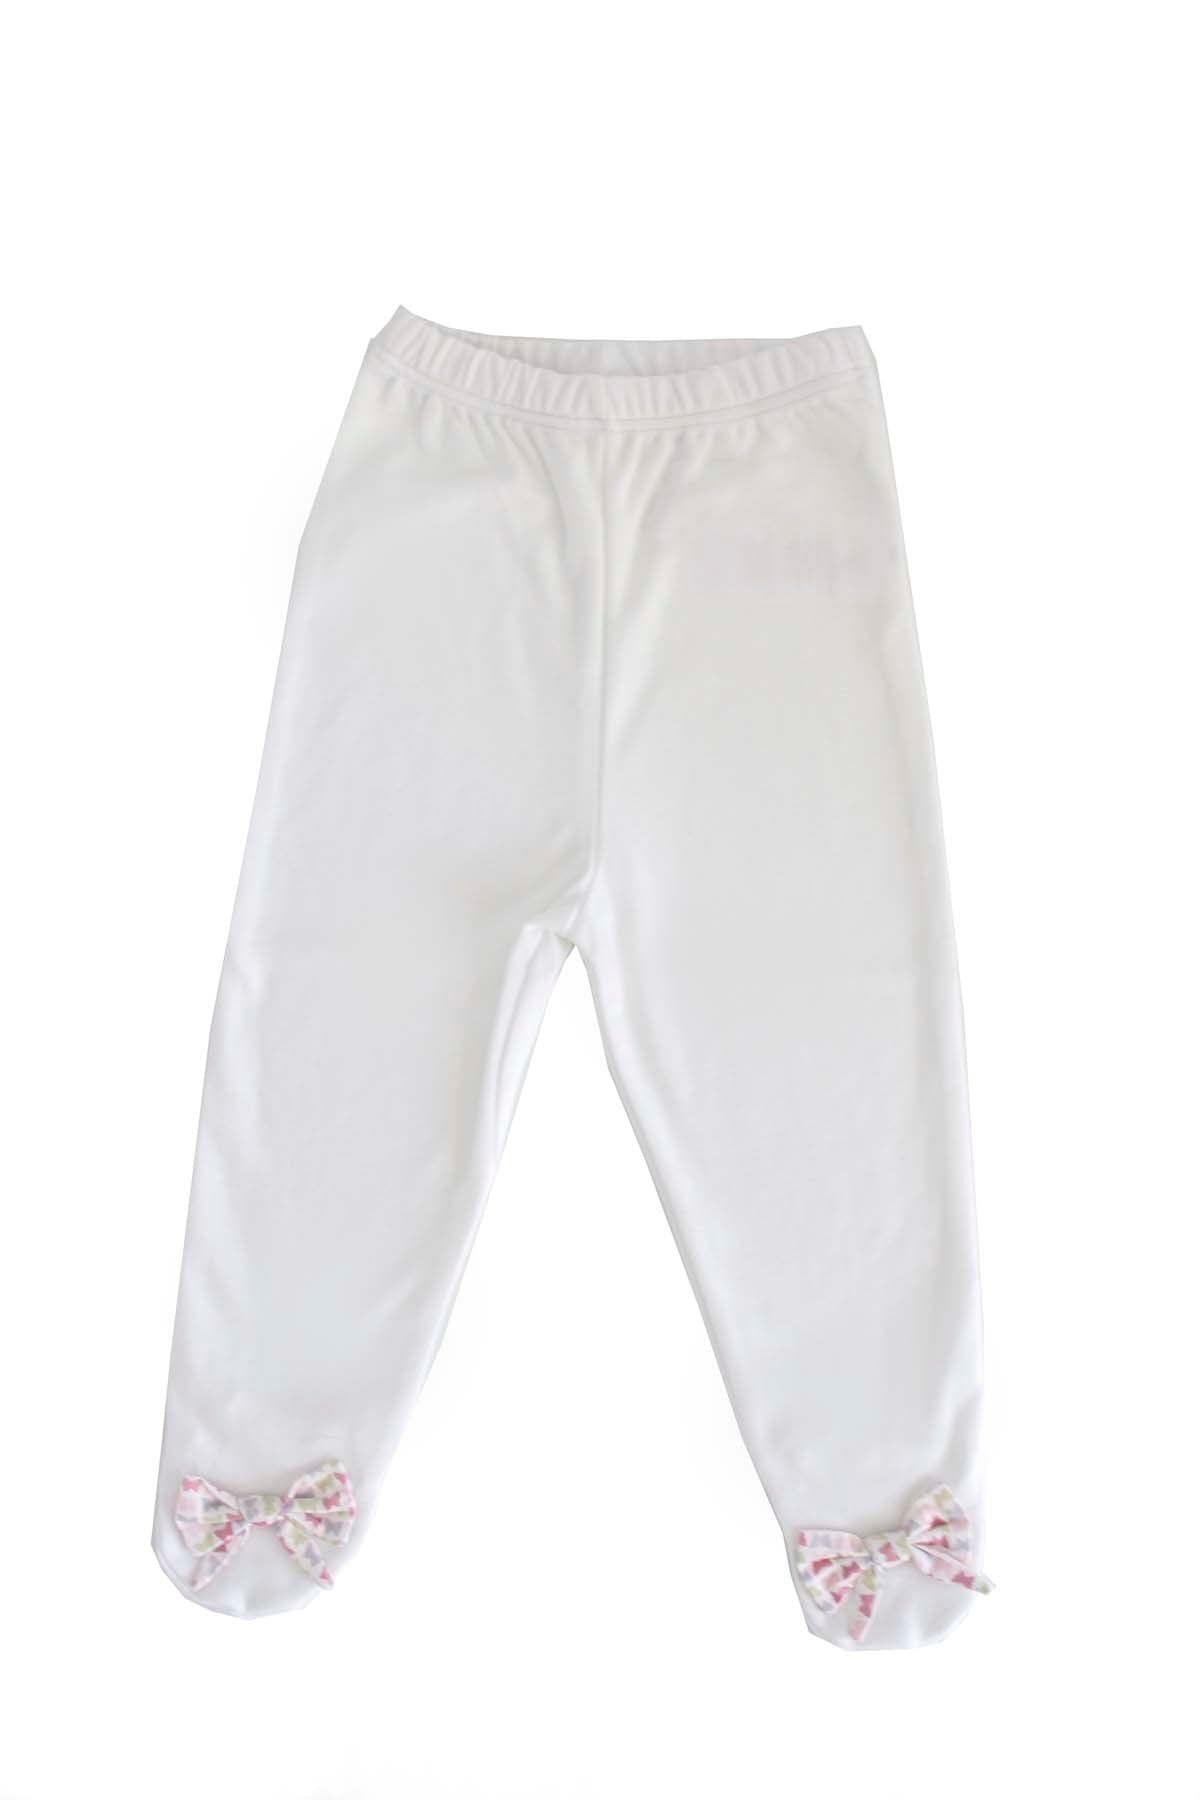 White Pants with butterfly details in the bottom Pima Cotton